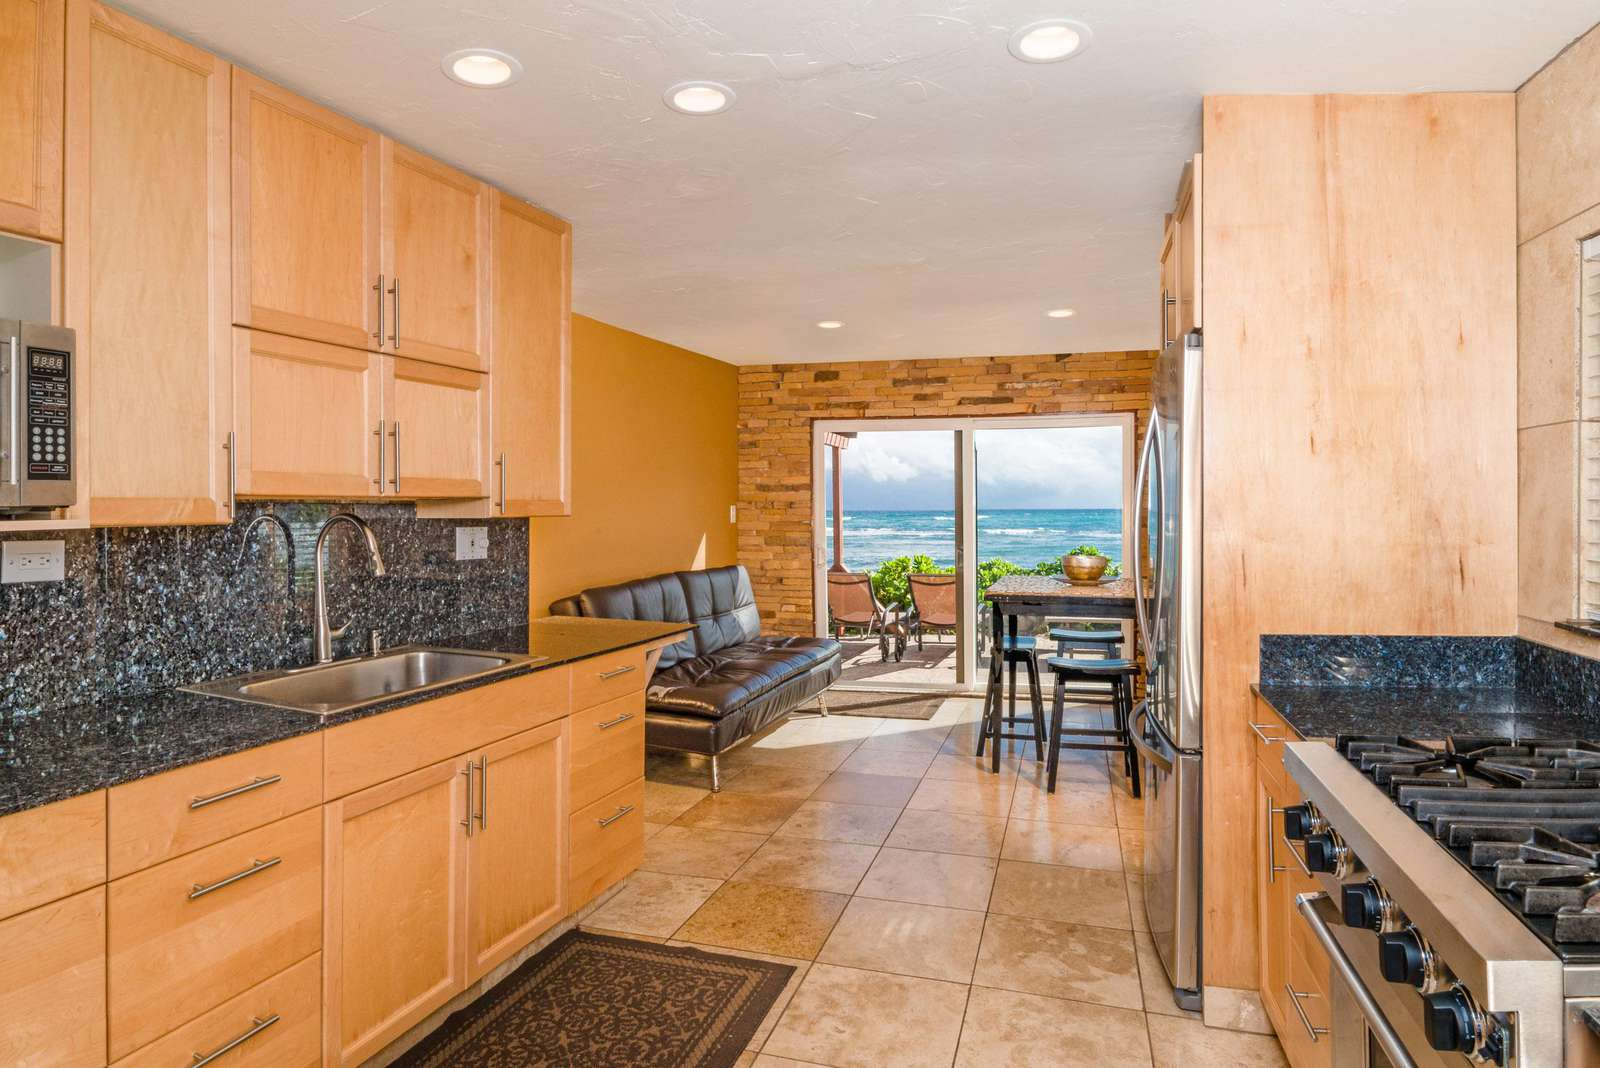 Large kitchen and dining area facing ocean. The beach is right outside of doors